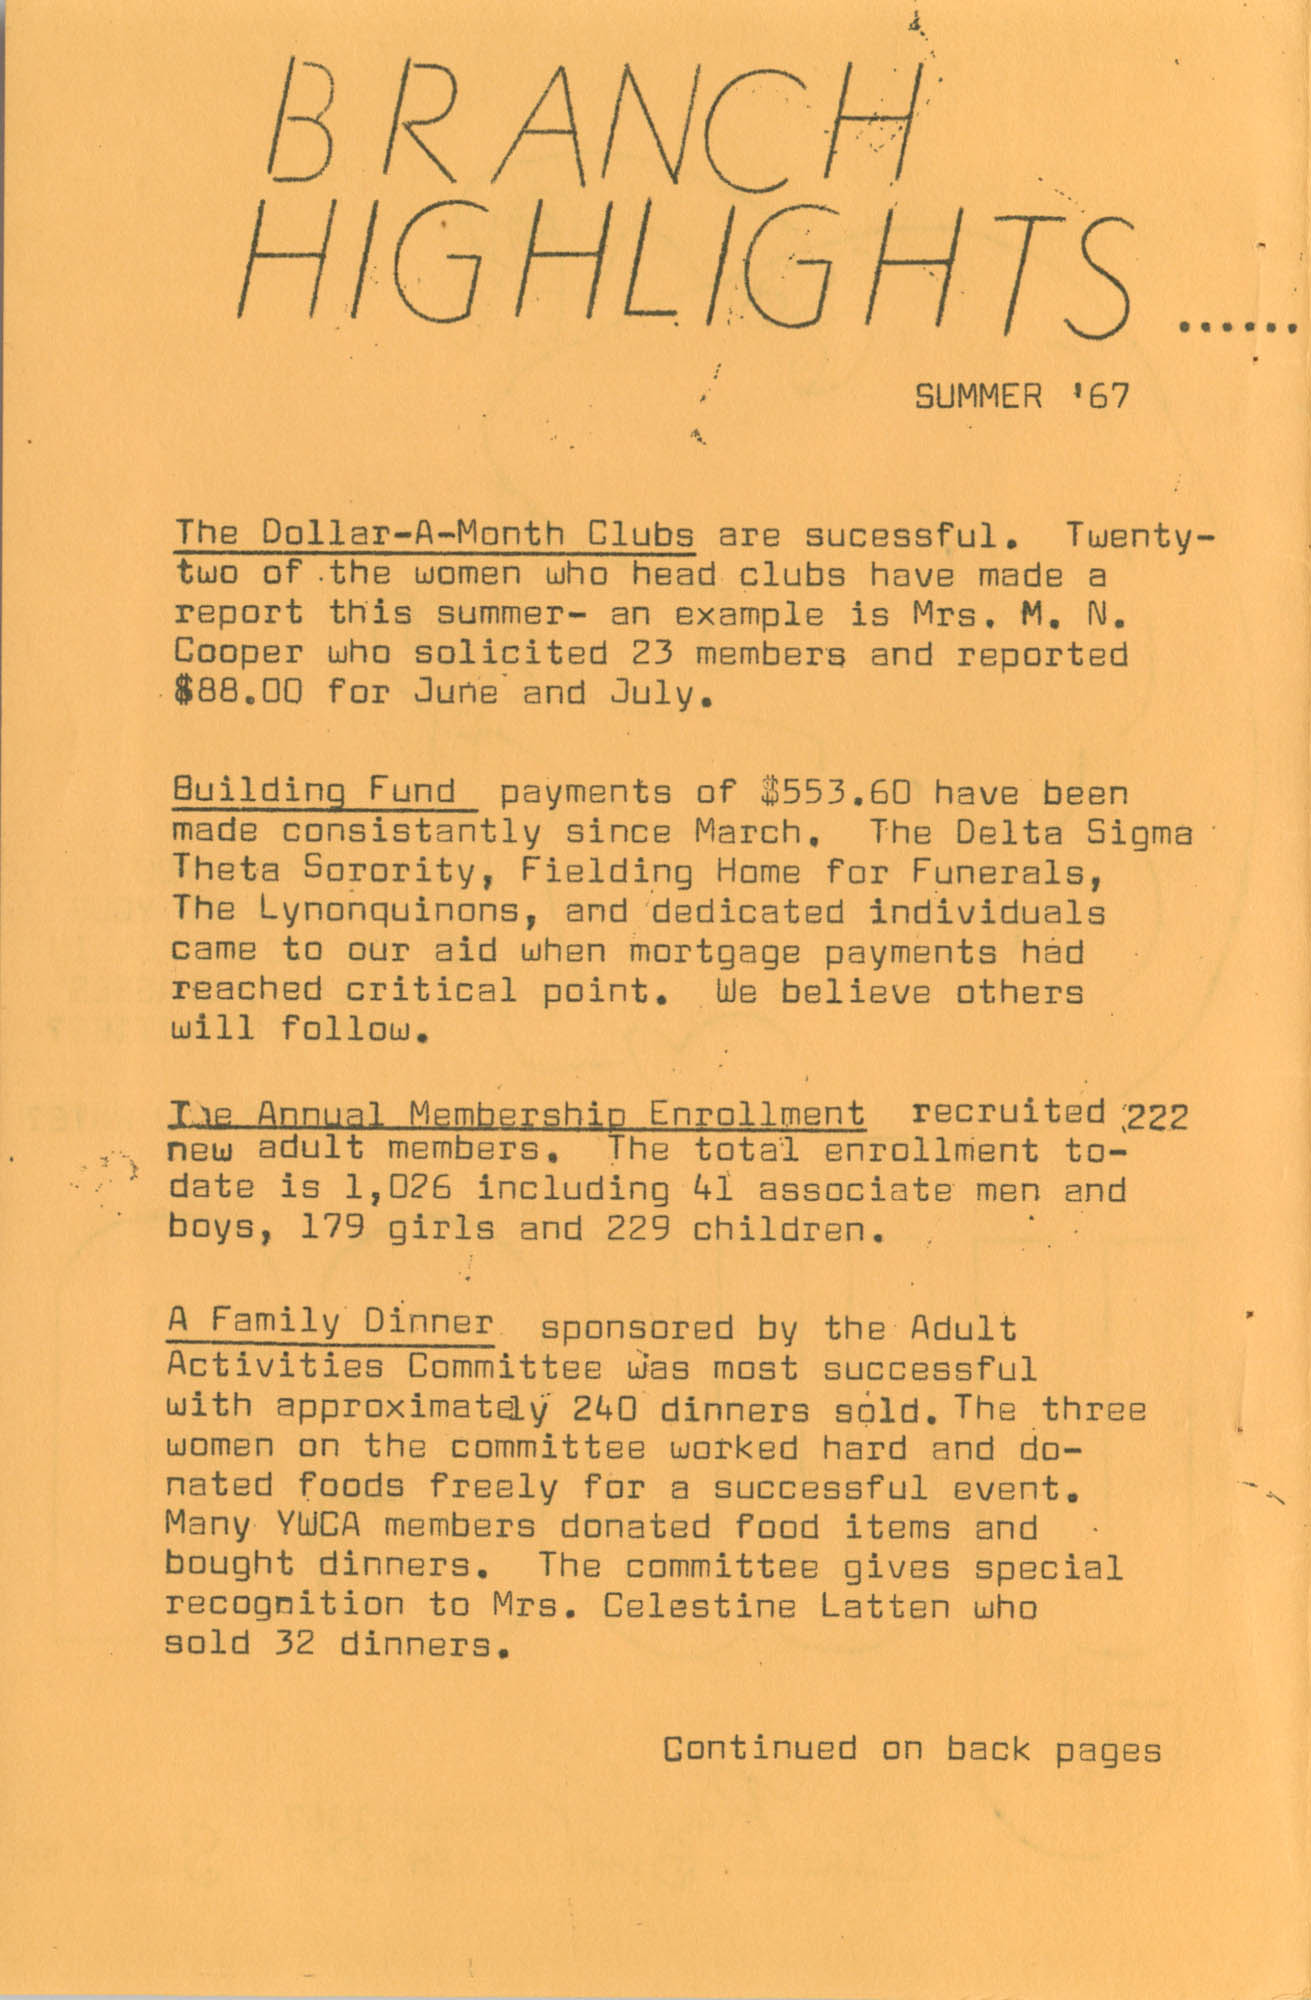 Coming Street Y.W.C.A. Fall Program, 1967, Page 1